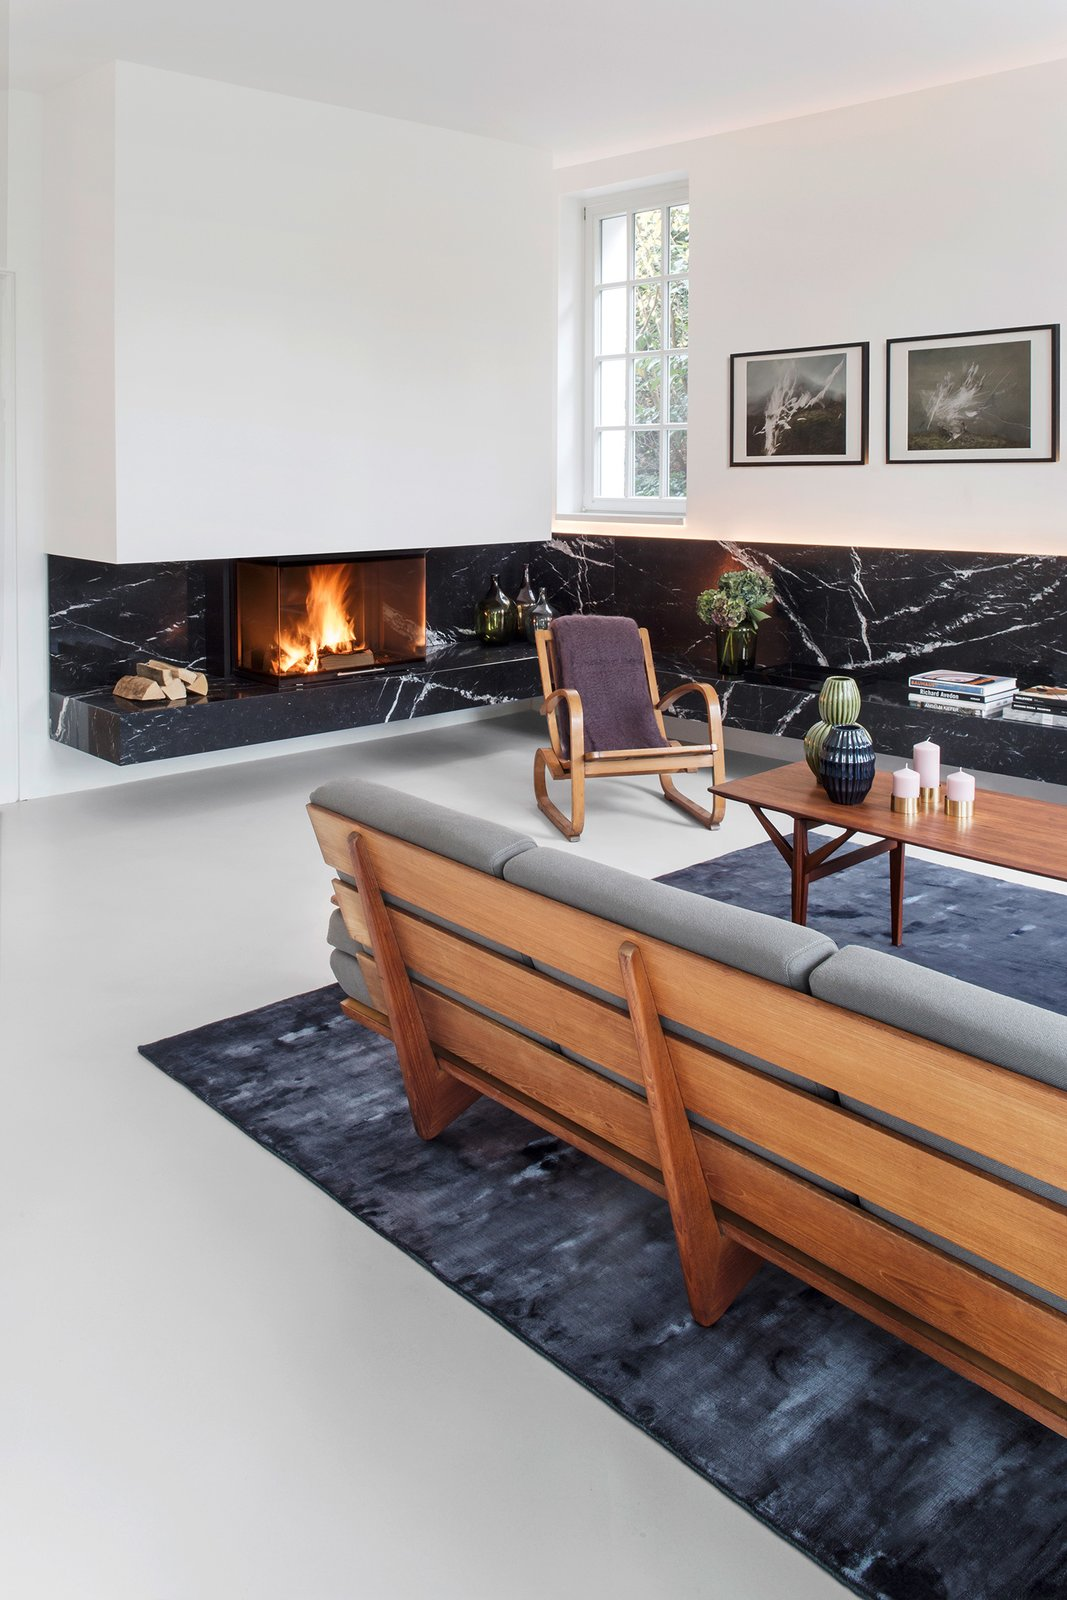 Nero Marquina marble is used in multiple rooms. In the living room, a strip of stone defines a bench that wraps around the space. Both the sofa and armchair are vintage. Ways to Define Spaces With Area Rugs by Heather Corcoran